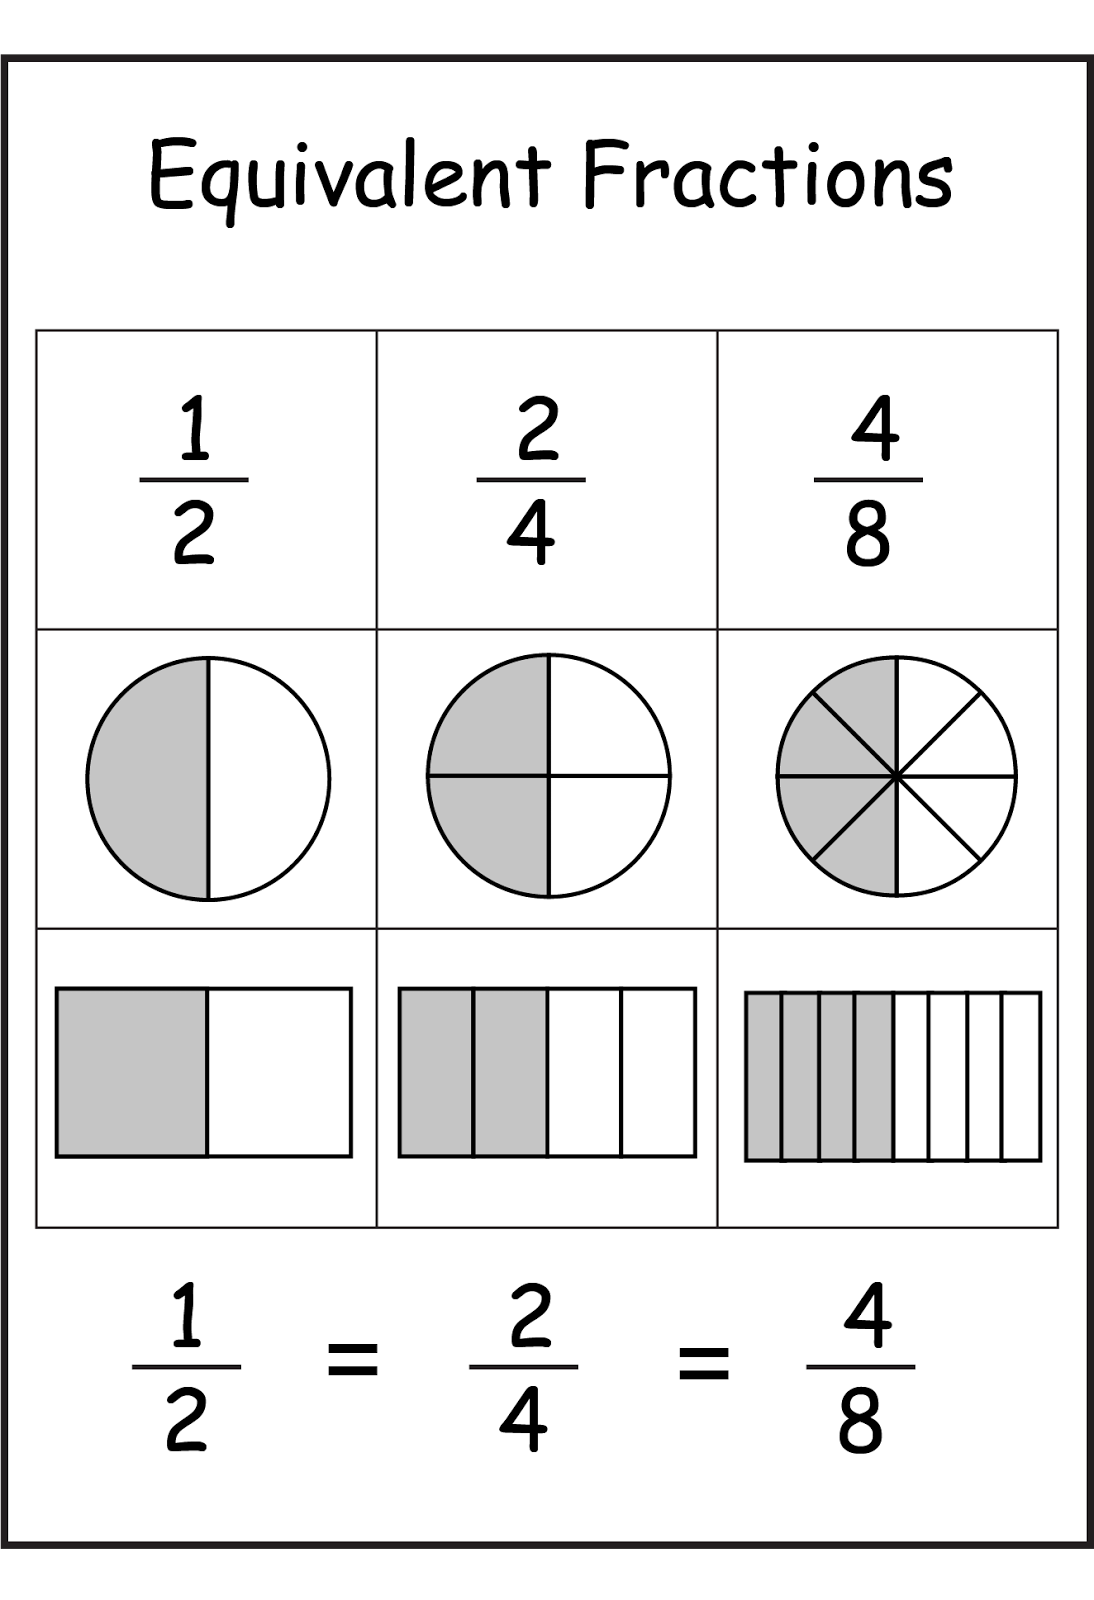 Year 3 Maths Worksheets Free and Printable | Learning Printable